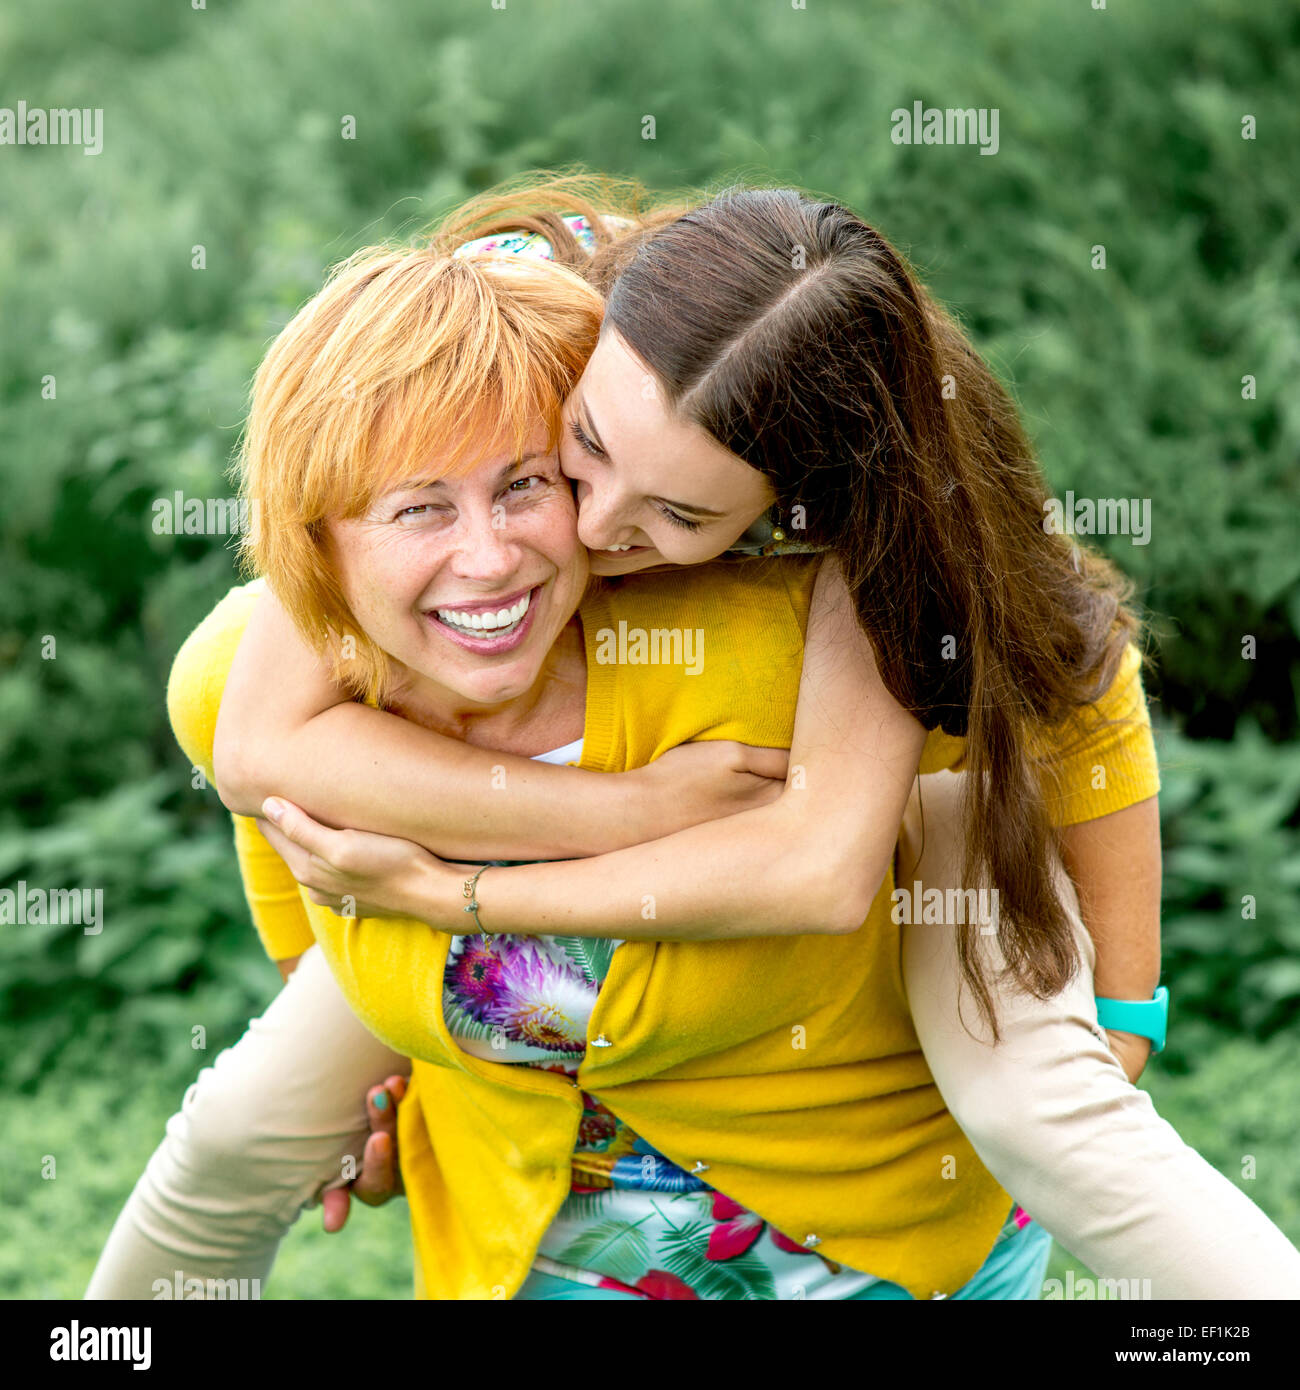 Mother giving piggyback riding to her daughter in the park - Stock Image